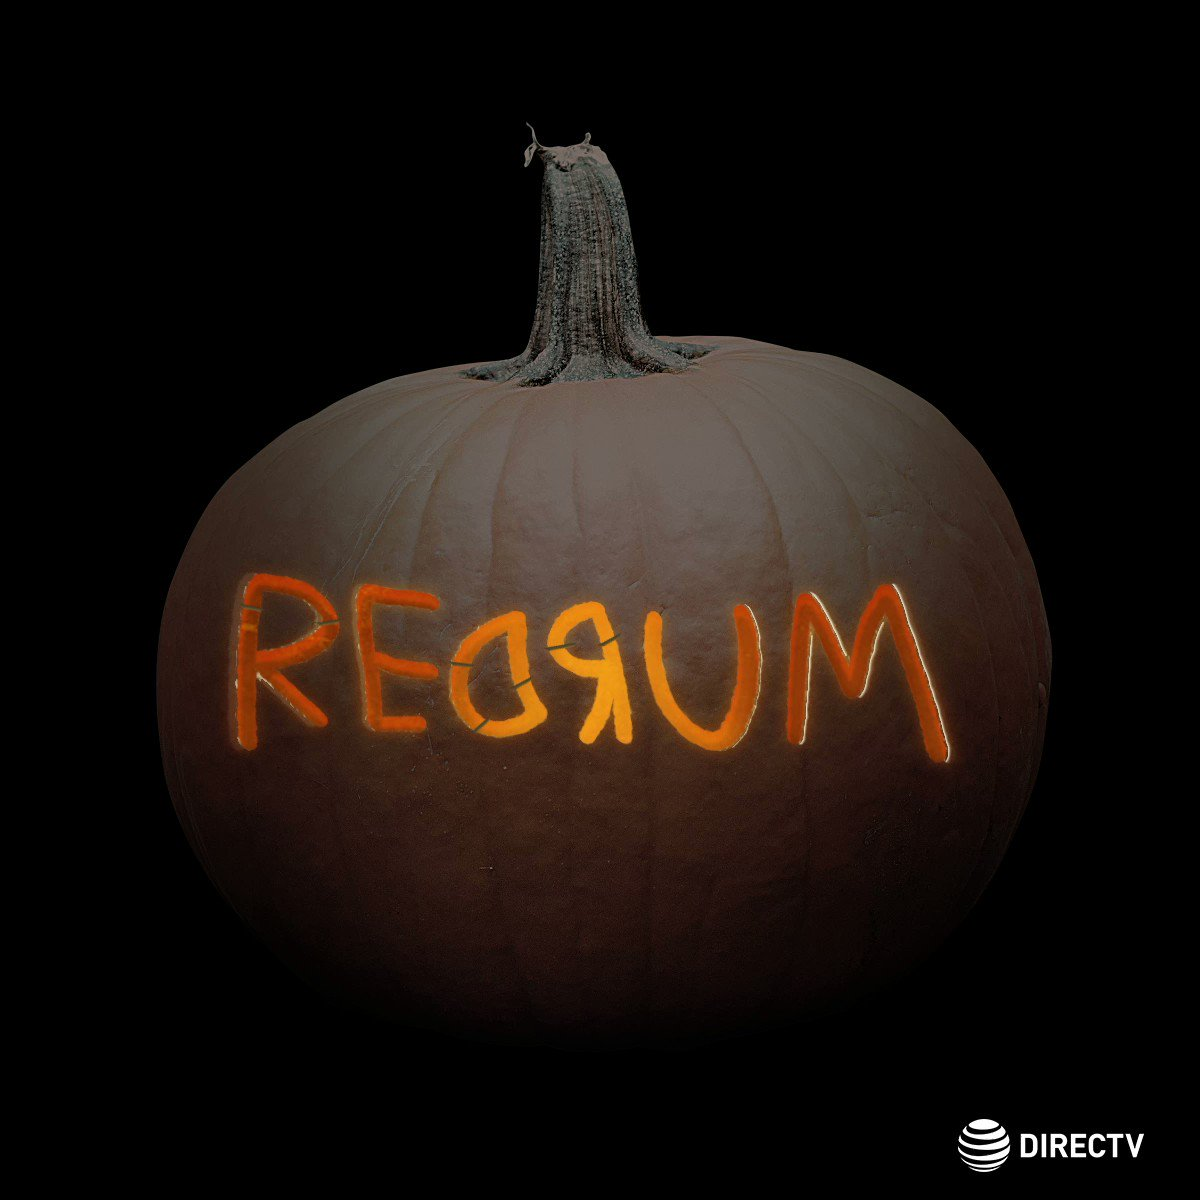 It's the last week of spooky season! 🎃 Celebrate by watching The Shining FREE On Demand in our Home-A-Ween folder on Ch 1000 along with all your other #Halloween favorites.